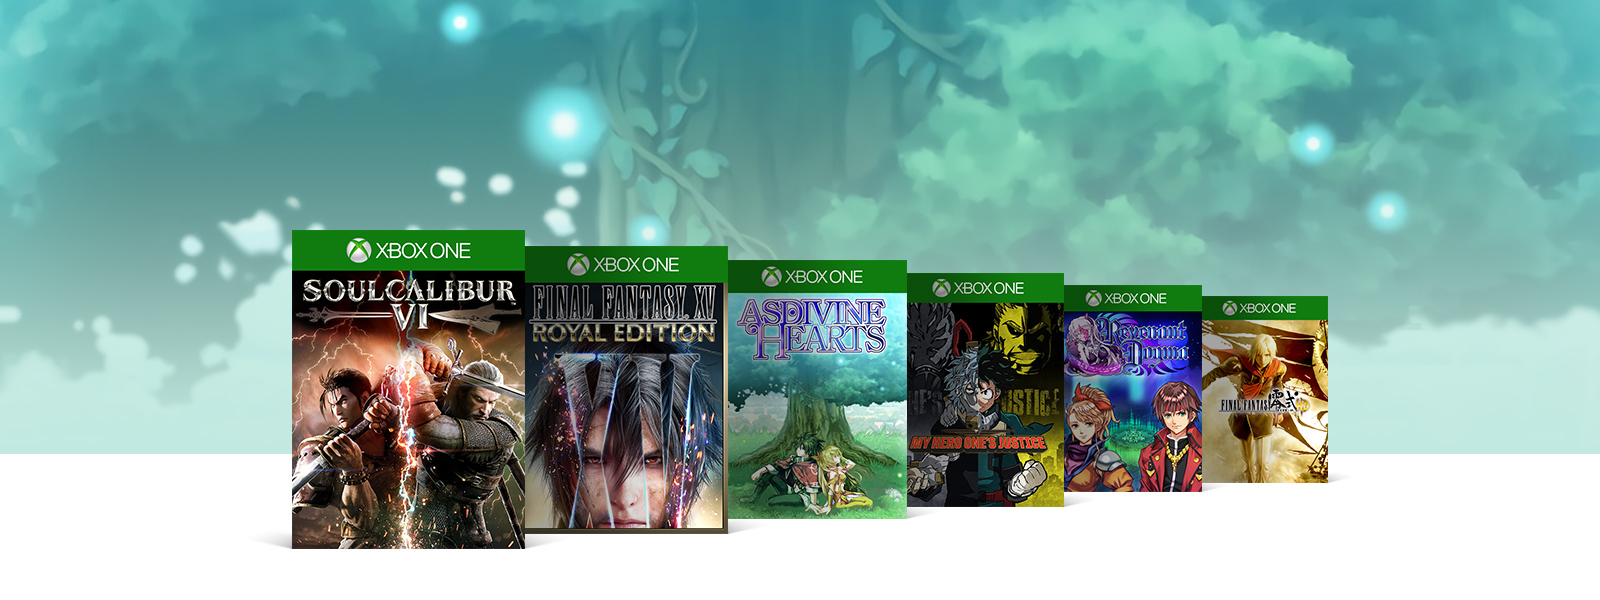 A collage of box art for Xbox One games on sale. SOULCALIBUR 6, FINAL FANTASY 15 ROYAL EDITION, Asdivine Hearts, My Hero One's Justice, Revenant Dogma, and FINAL FANTASY TYPE-0 HD.